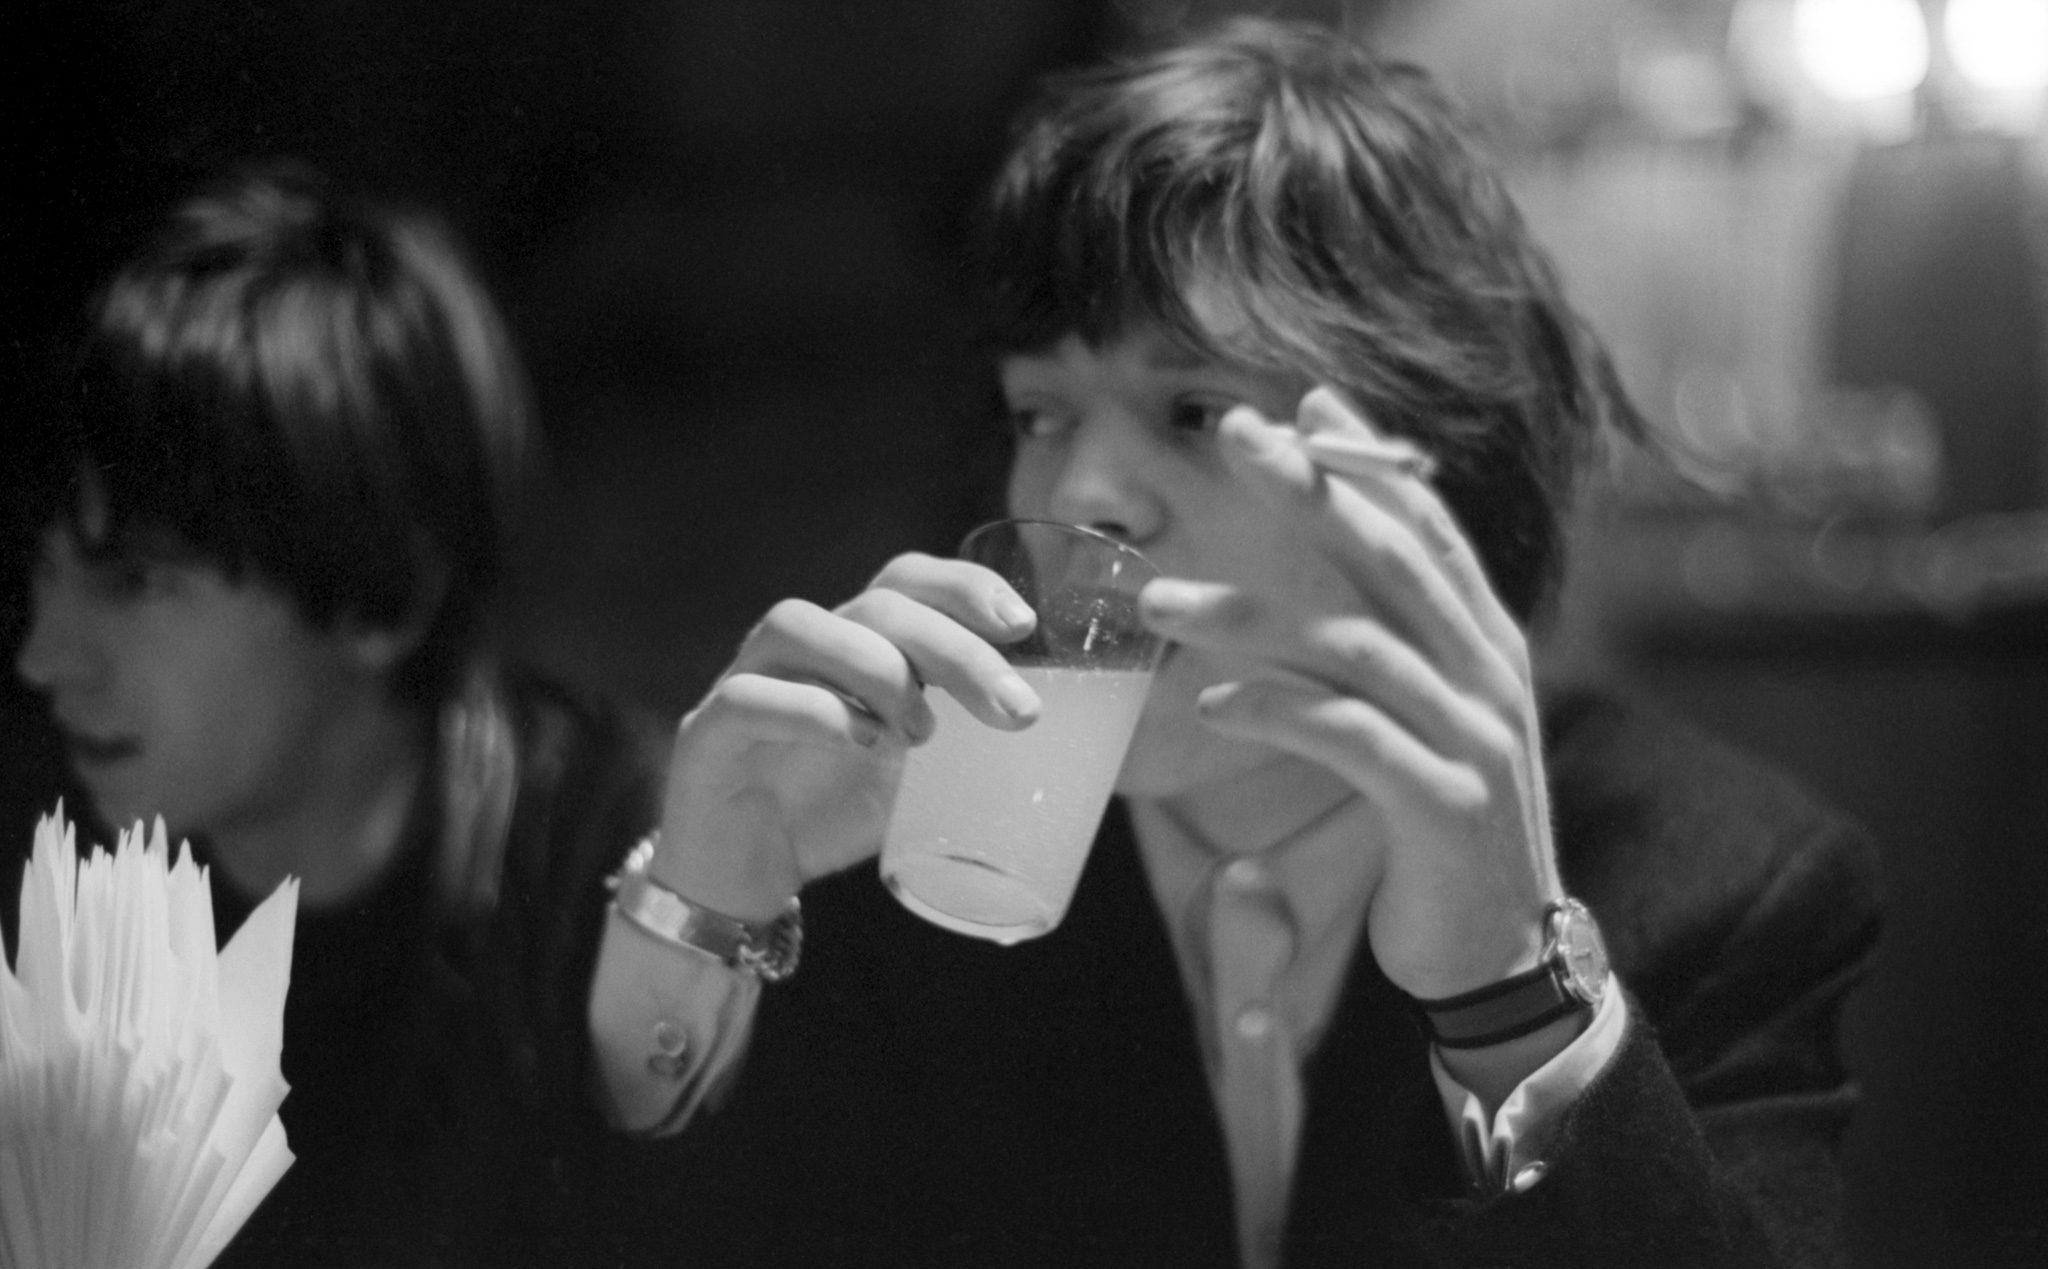 Mick Jagger with cigarette